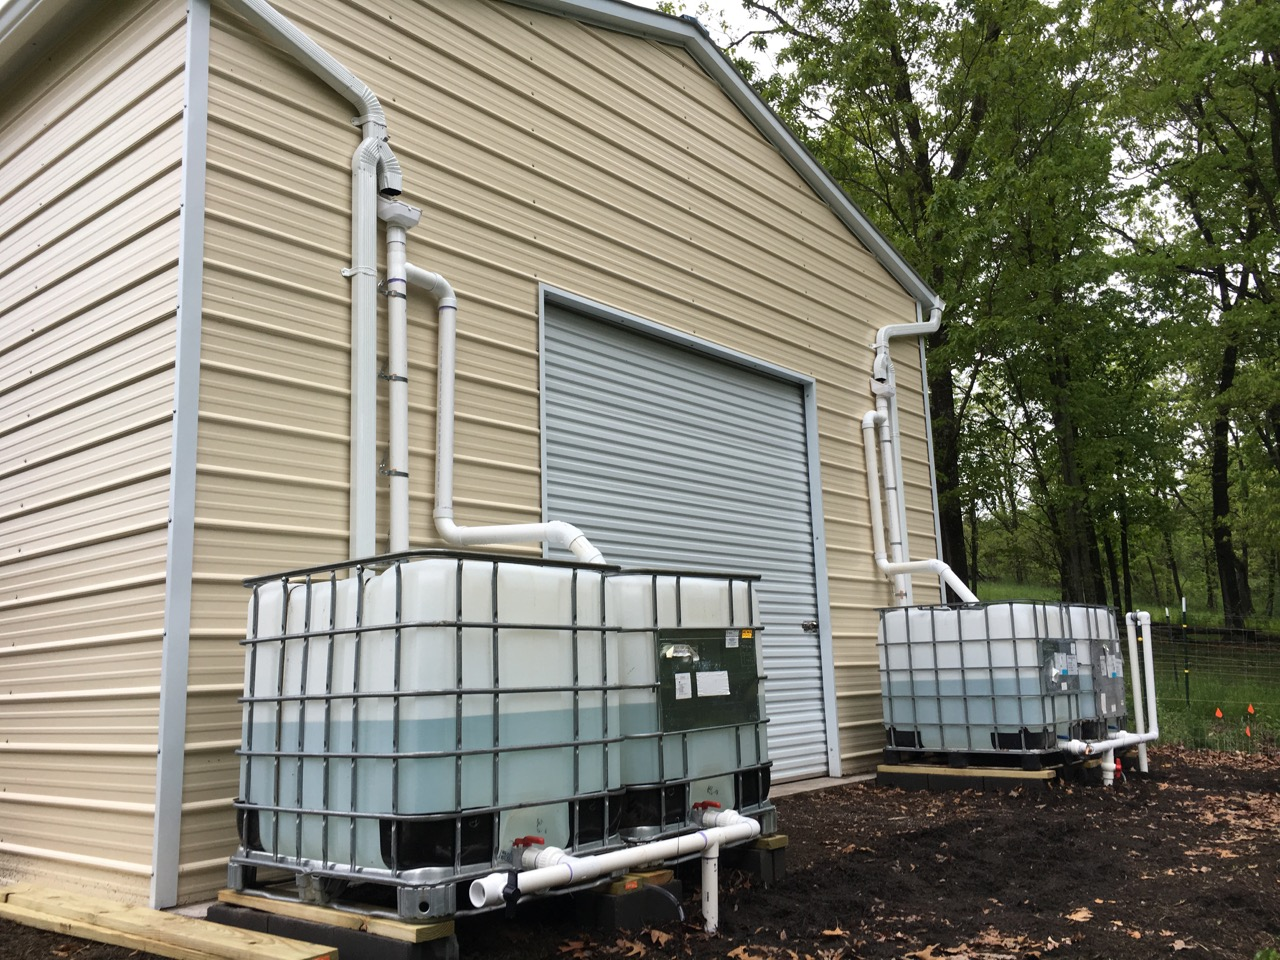 Great escape farms large rainwater harvesting system for Rainwater harvesting at home